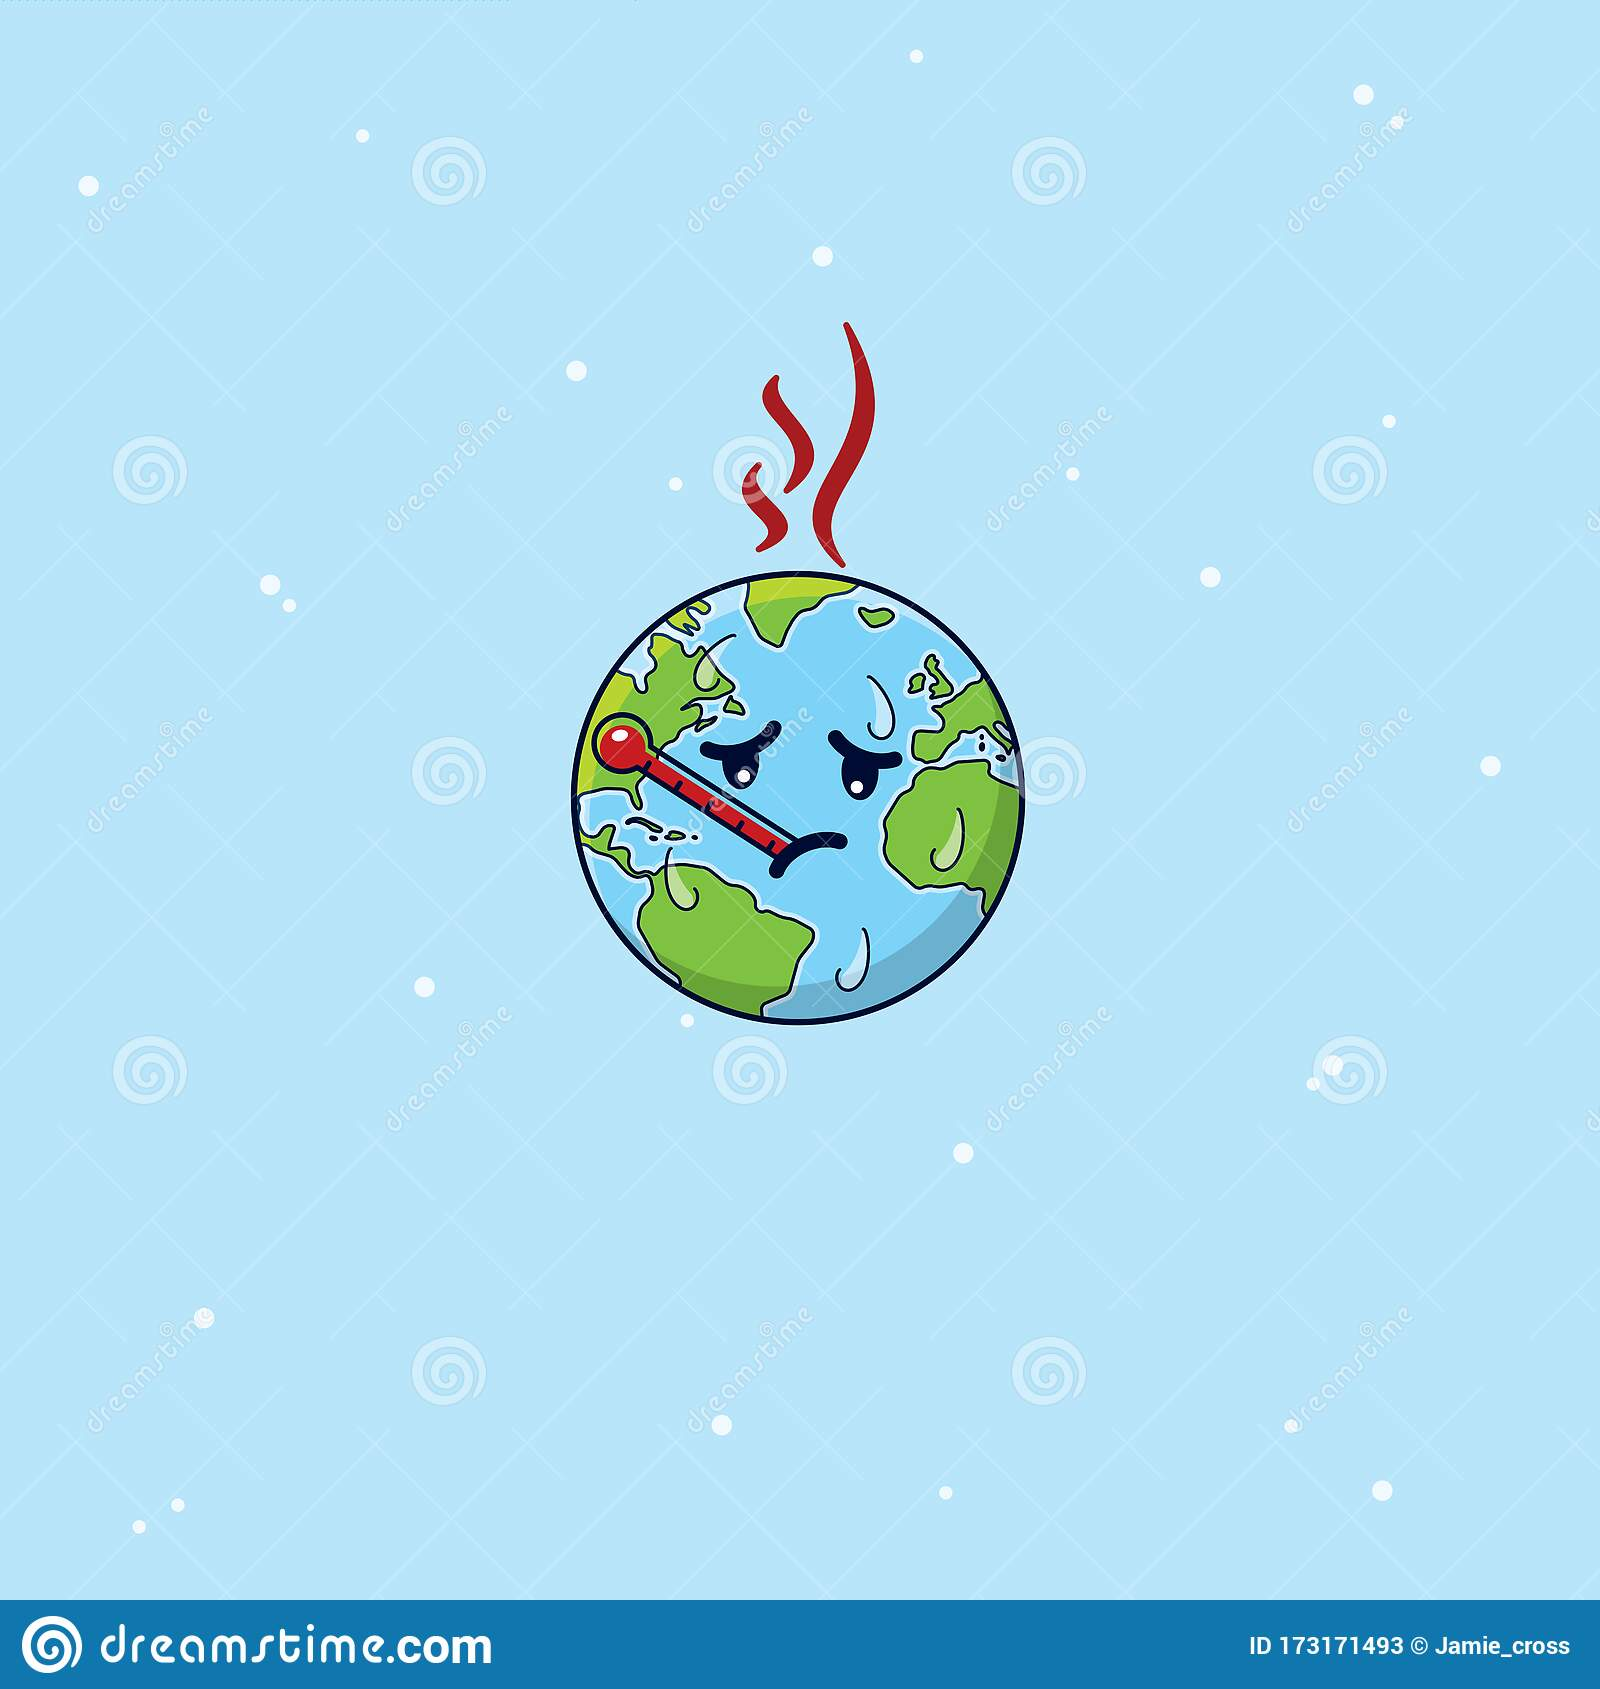 Climate Change Global Warming Globe Cartoon Stock Vector - Illustration of concept, carbon: 173171493